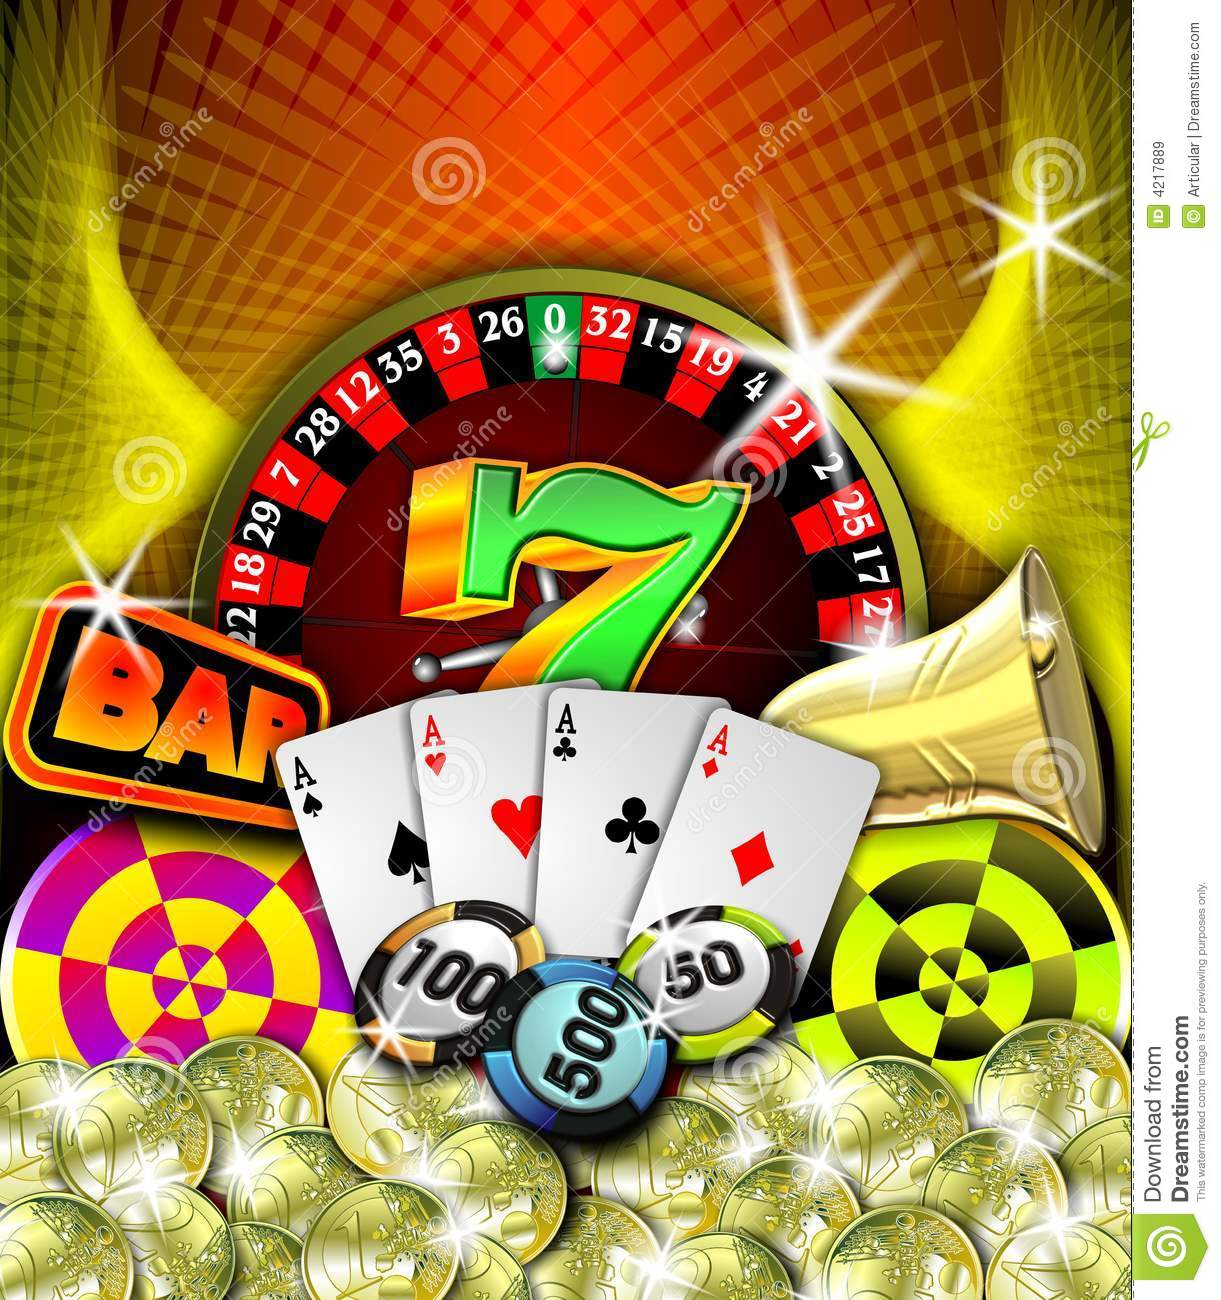 Royalty free casino pictures online-casino.com review